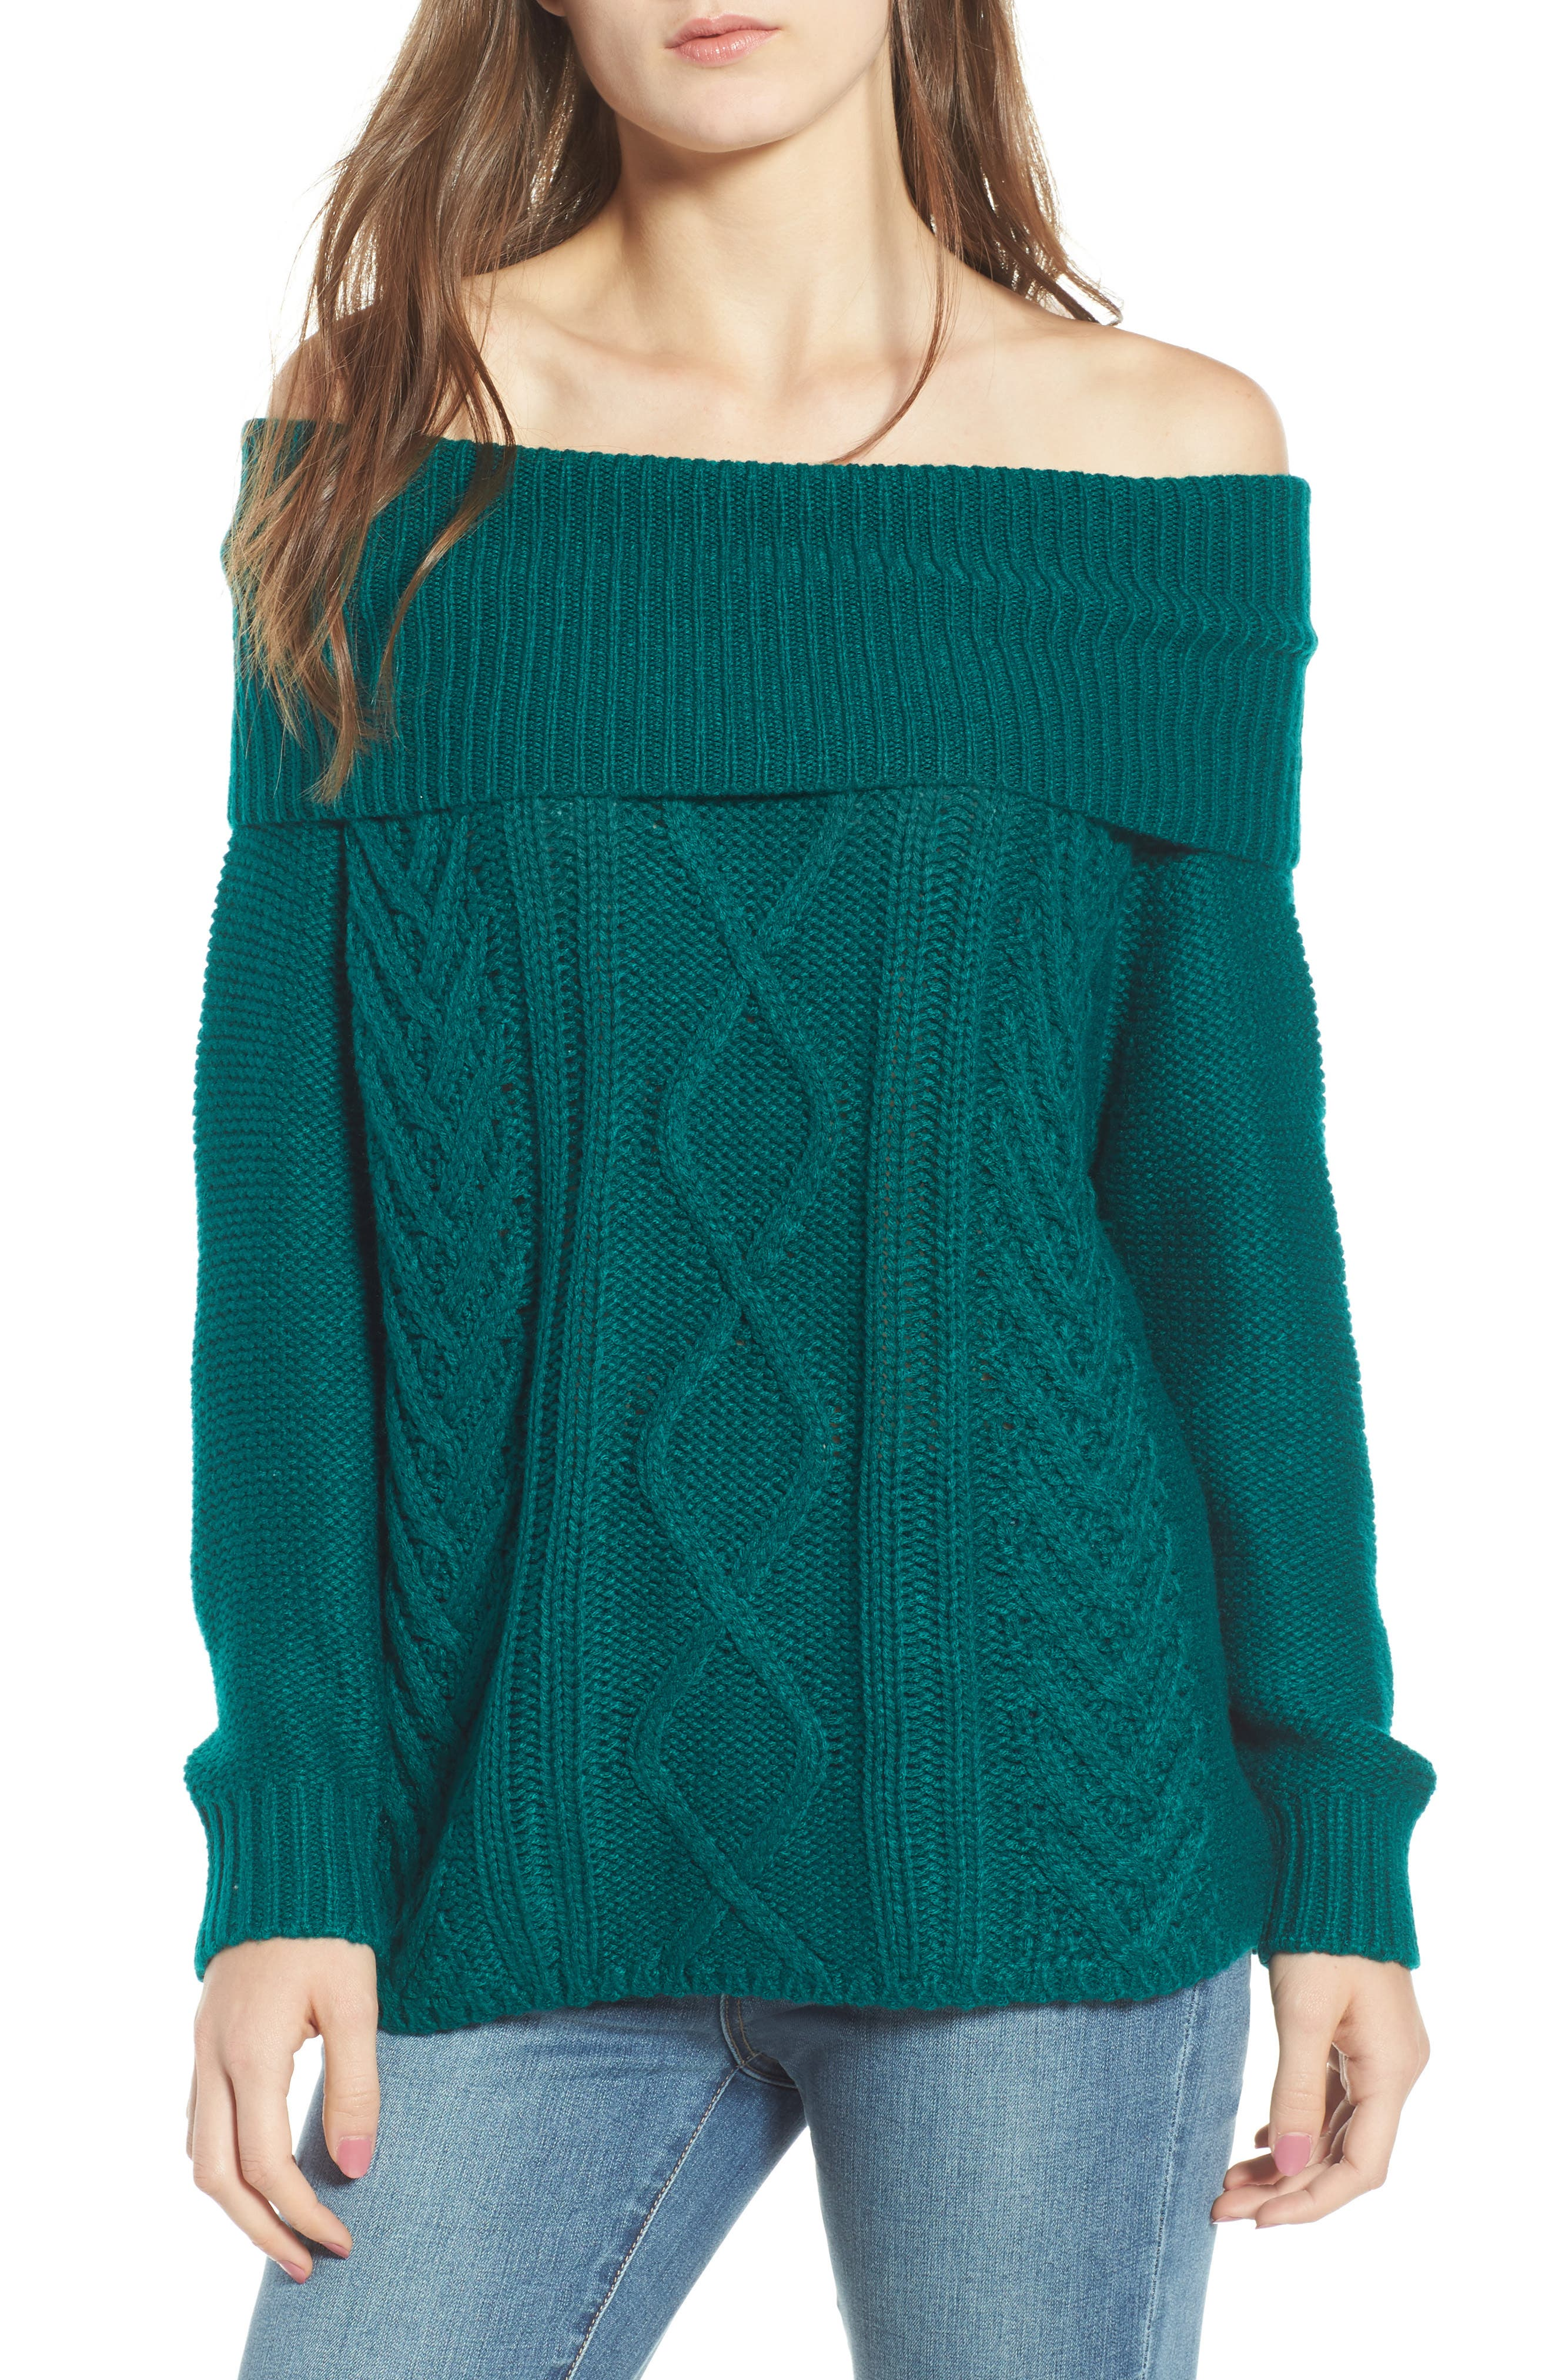 Off Shore Cable Knit Sweater,                             Main thumbnail 1, color,                             440